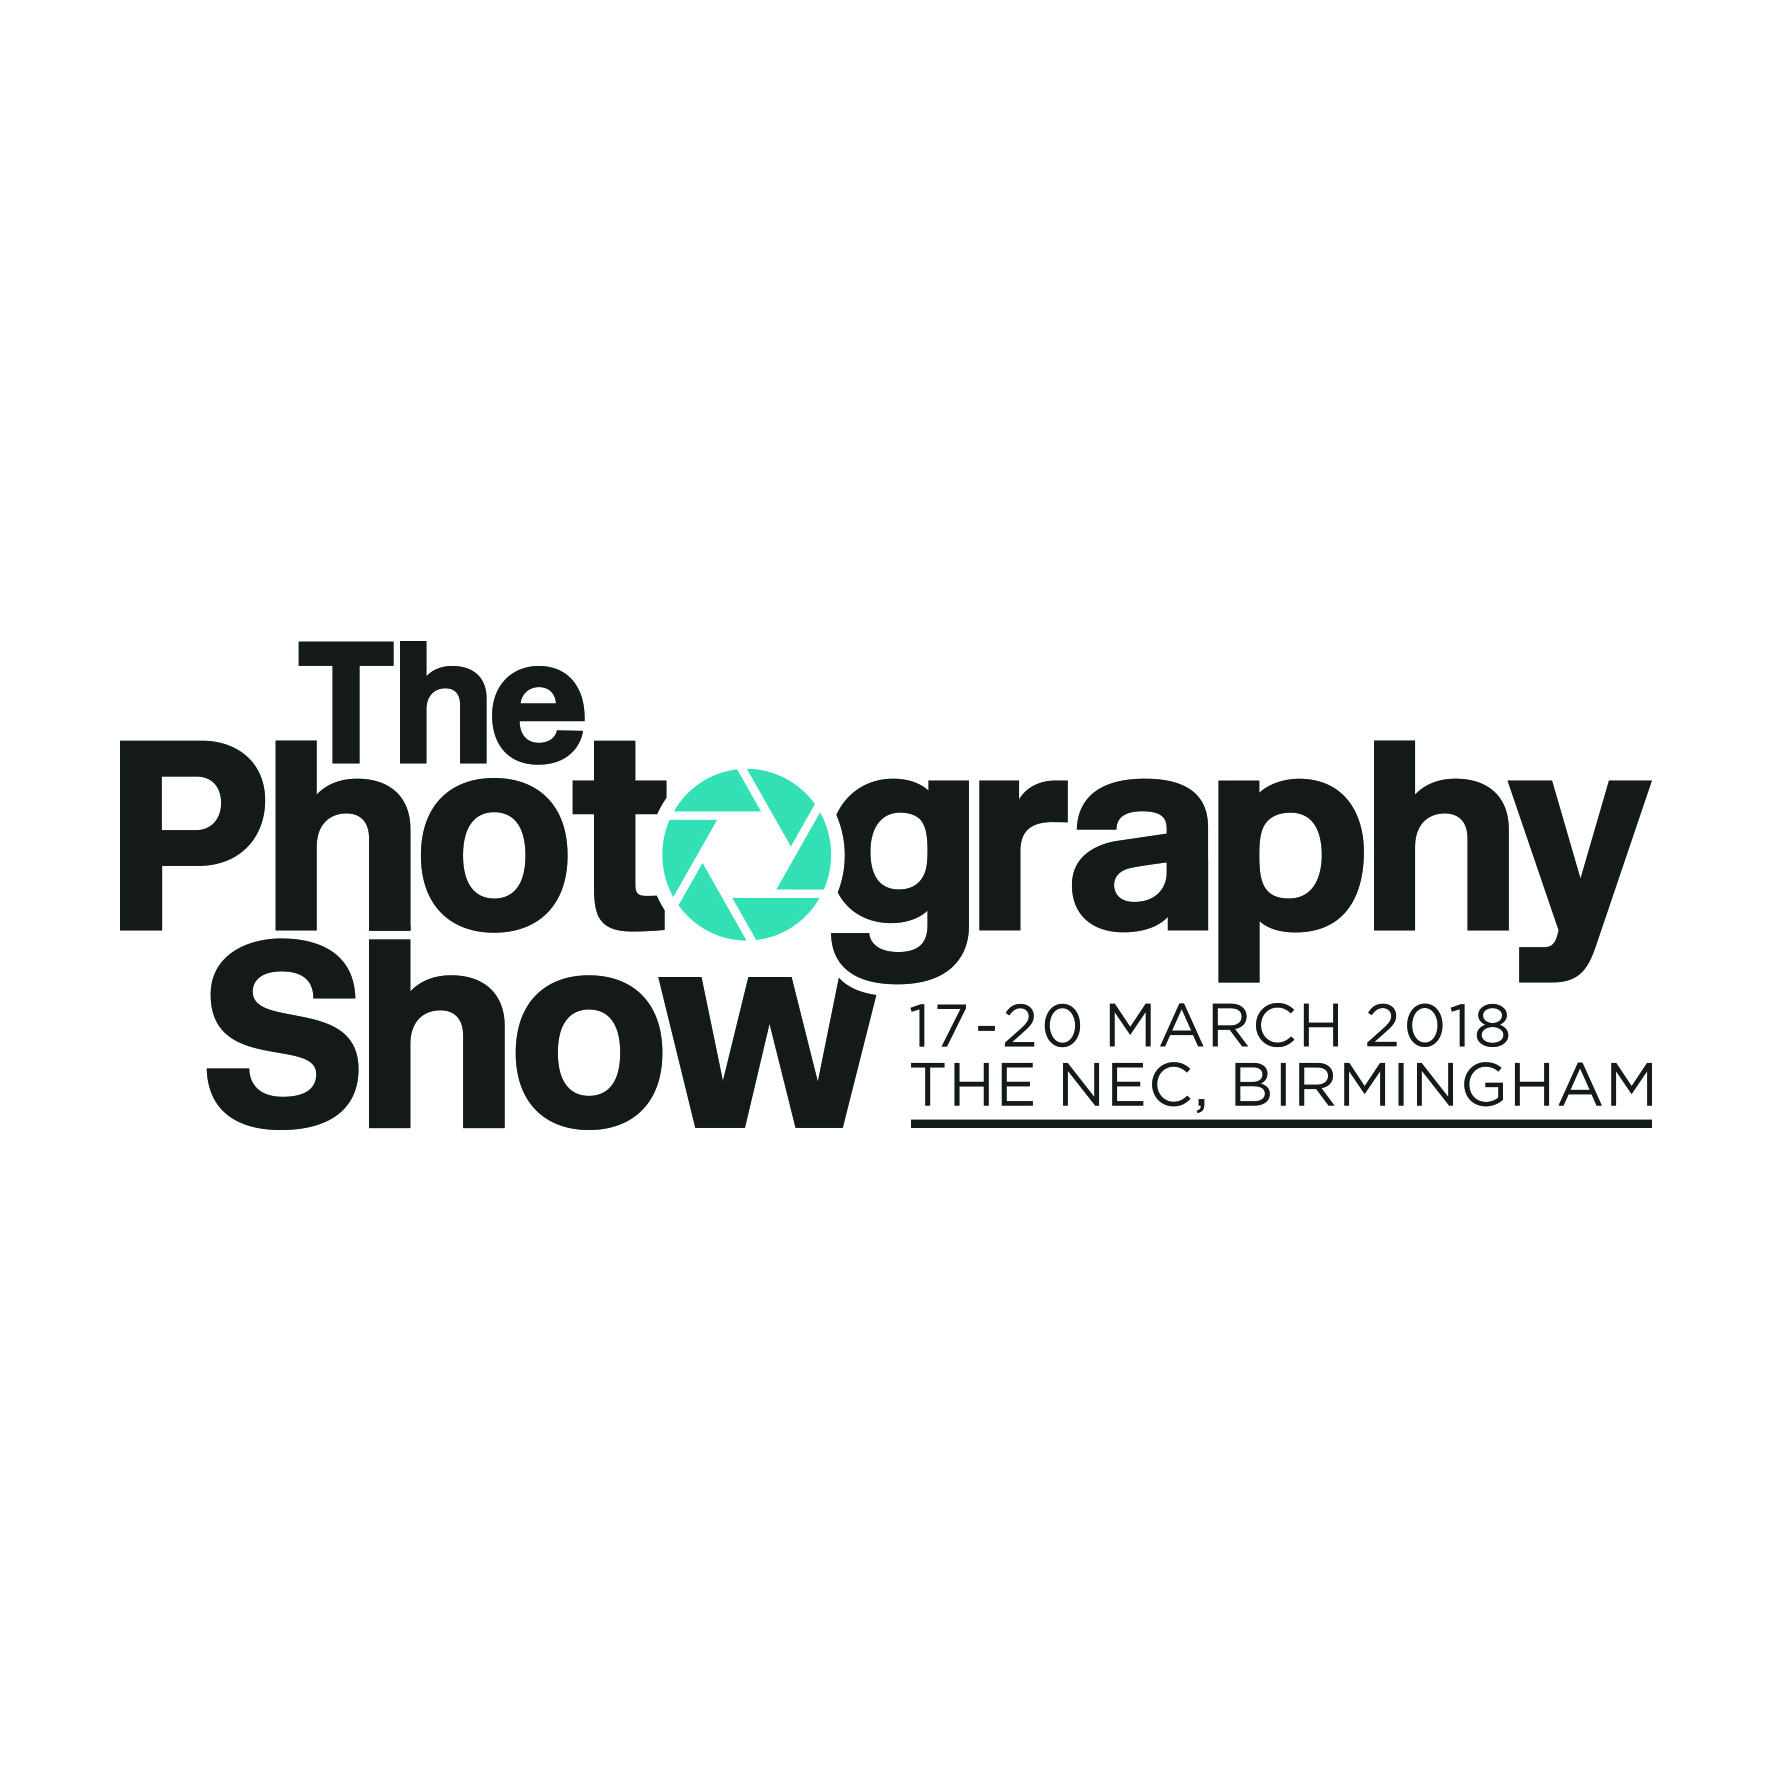 The Photography Show 2018 – Entry Ticket Competition